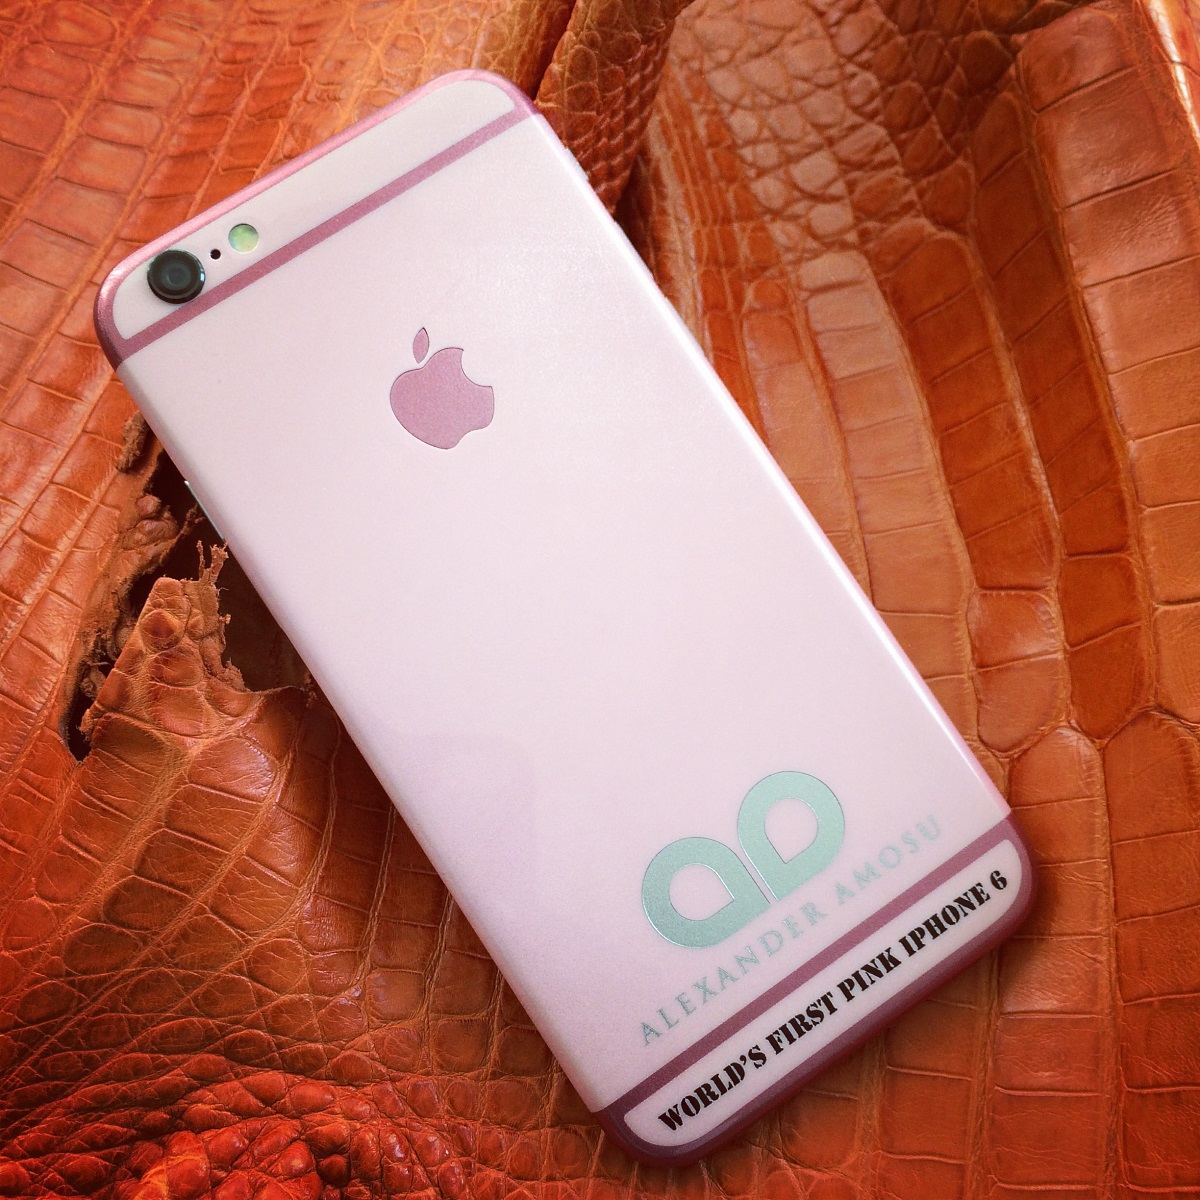 Amosu pink iPhone 6 for Valentines Day